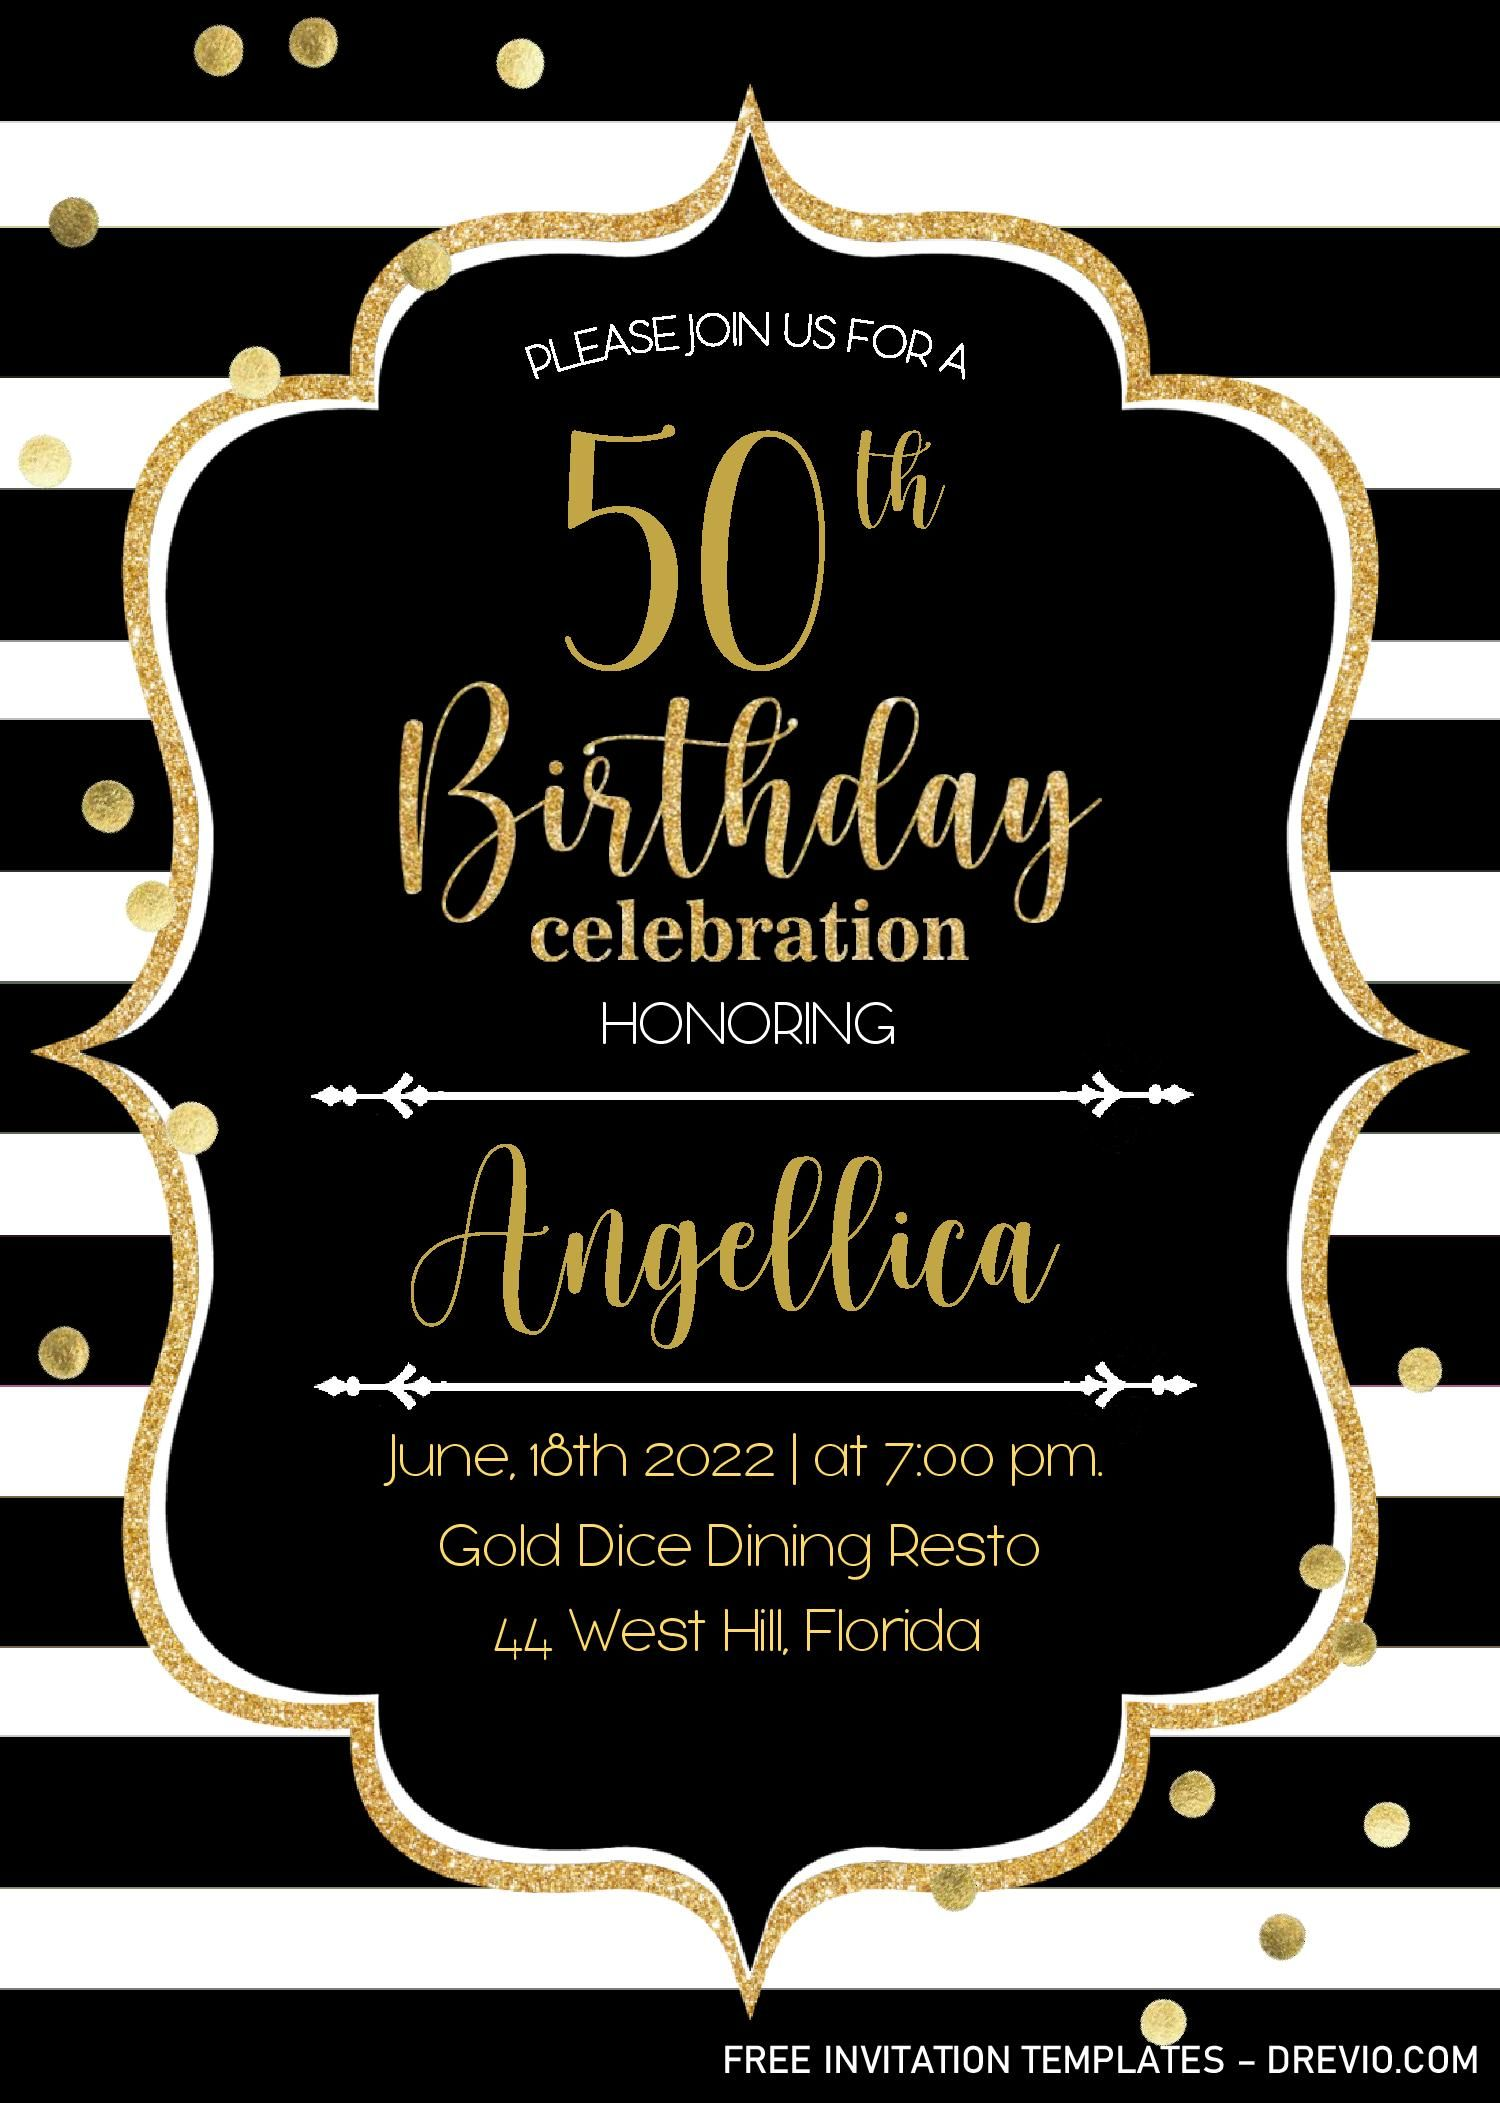 Black And Gold 50th Birthday Invitation Templates - Editable With MS Word |  DREVIO in 2020 | Free printable birthday invitations, Printable birthday  invitations, Invitation template